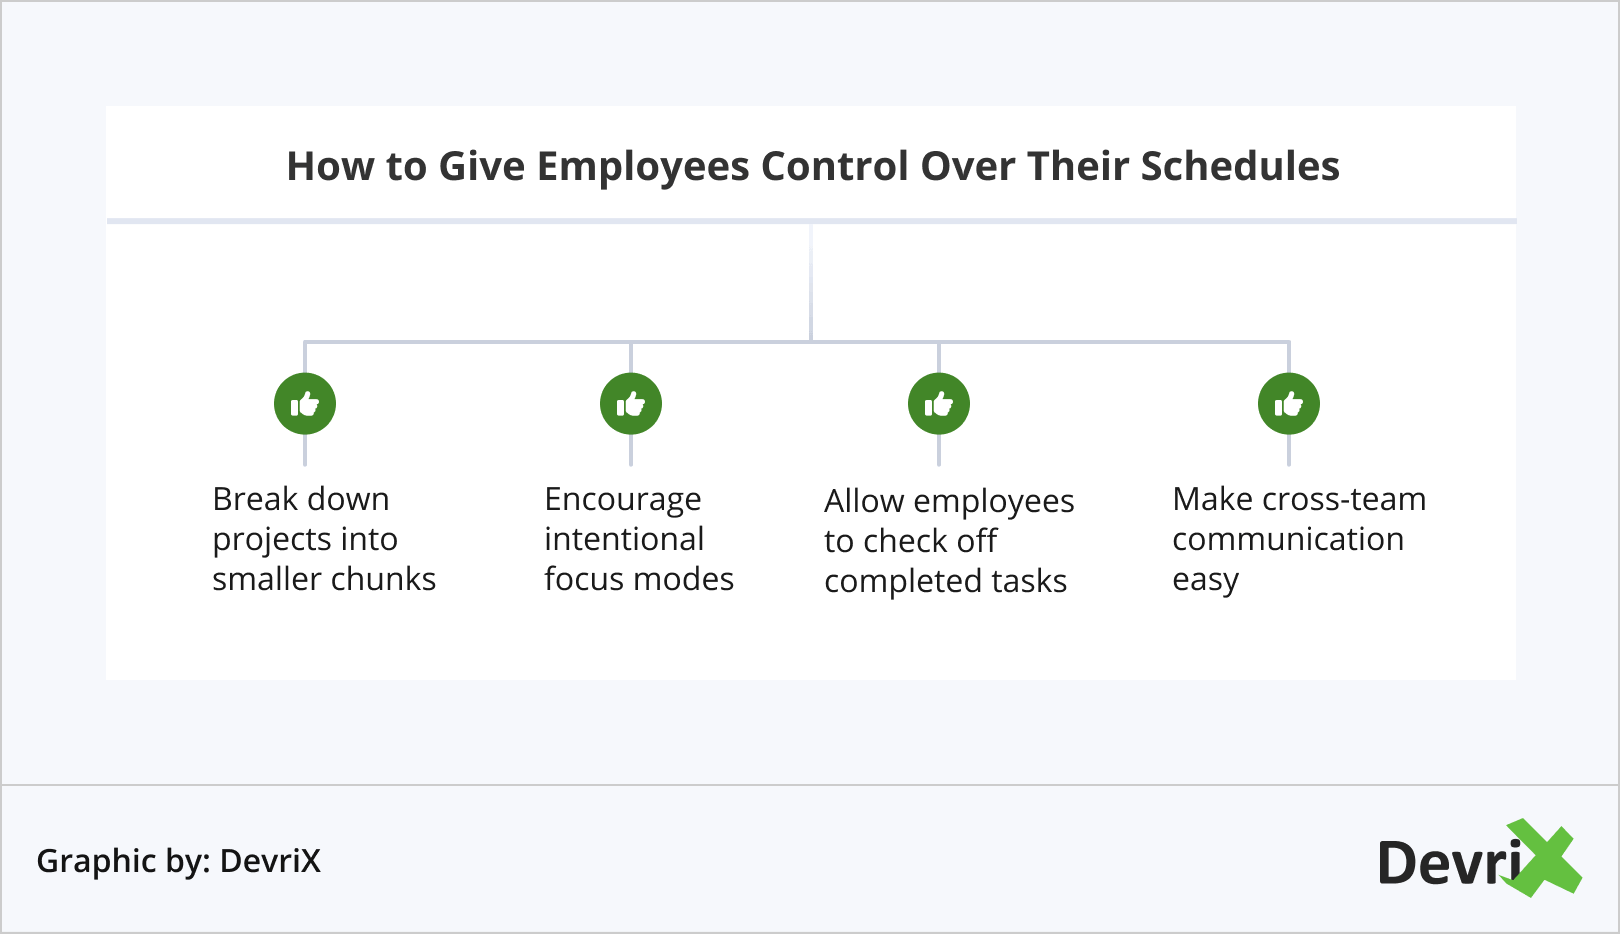 How to Give Employees Control Over Their Schedules